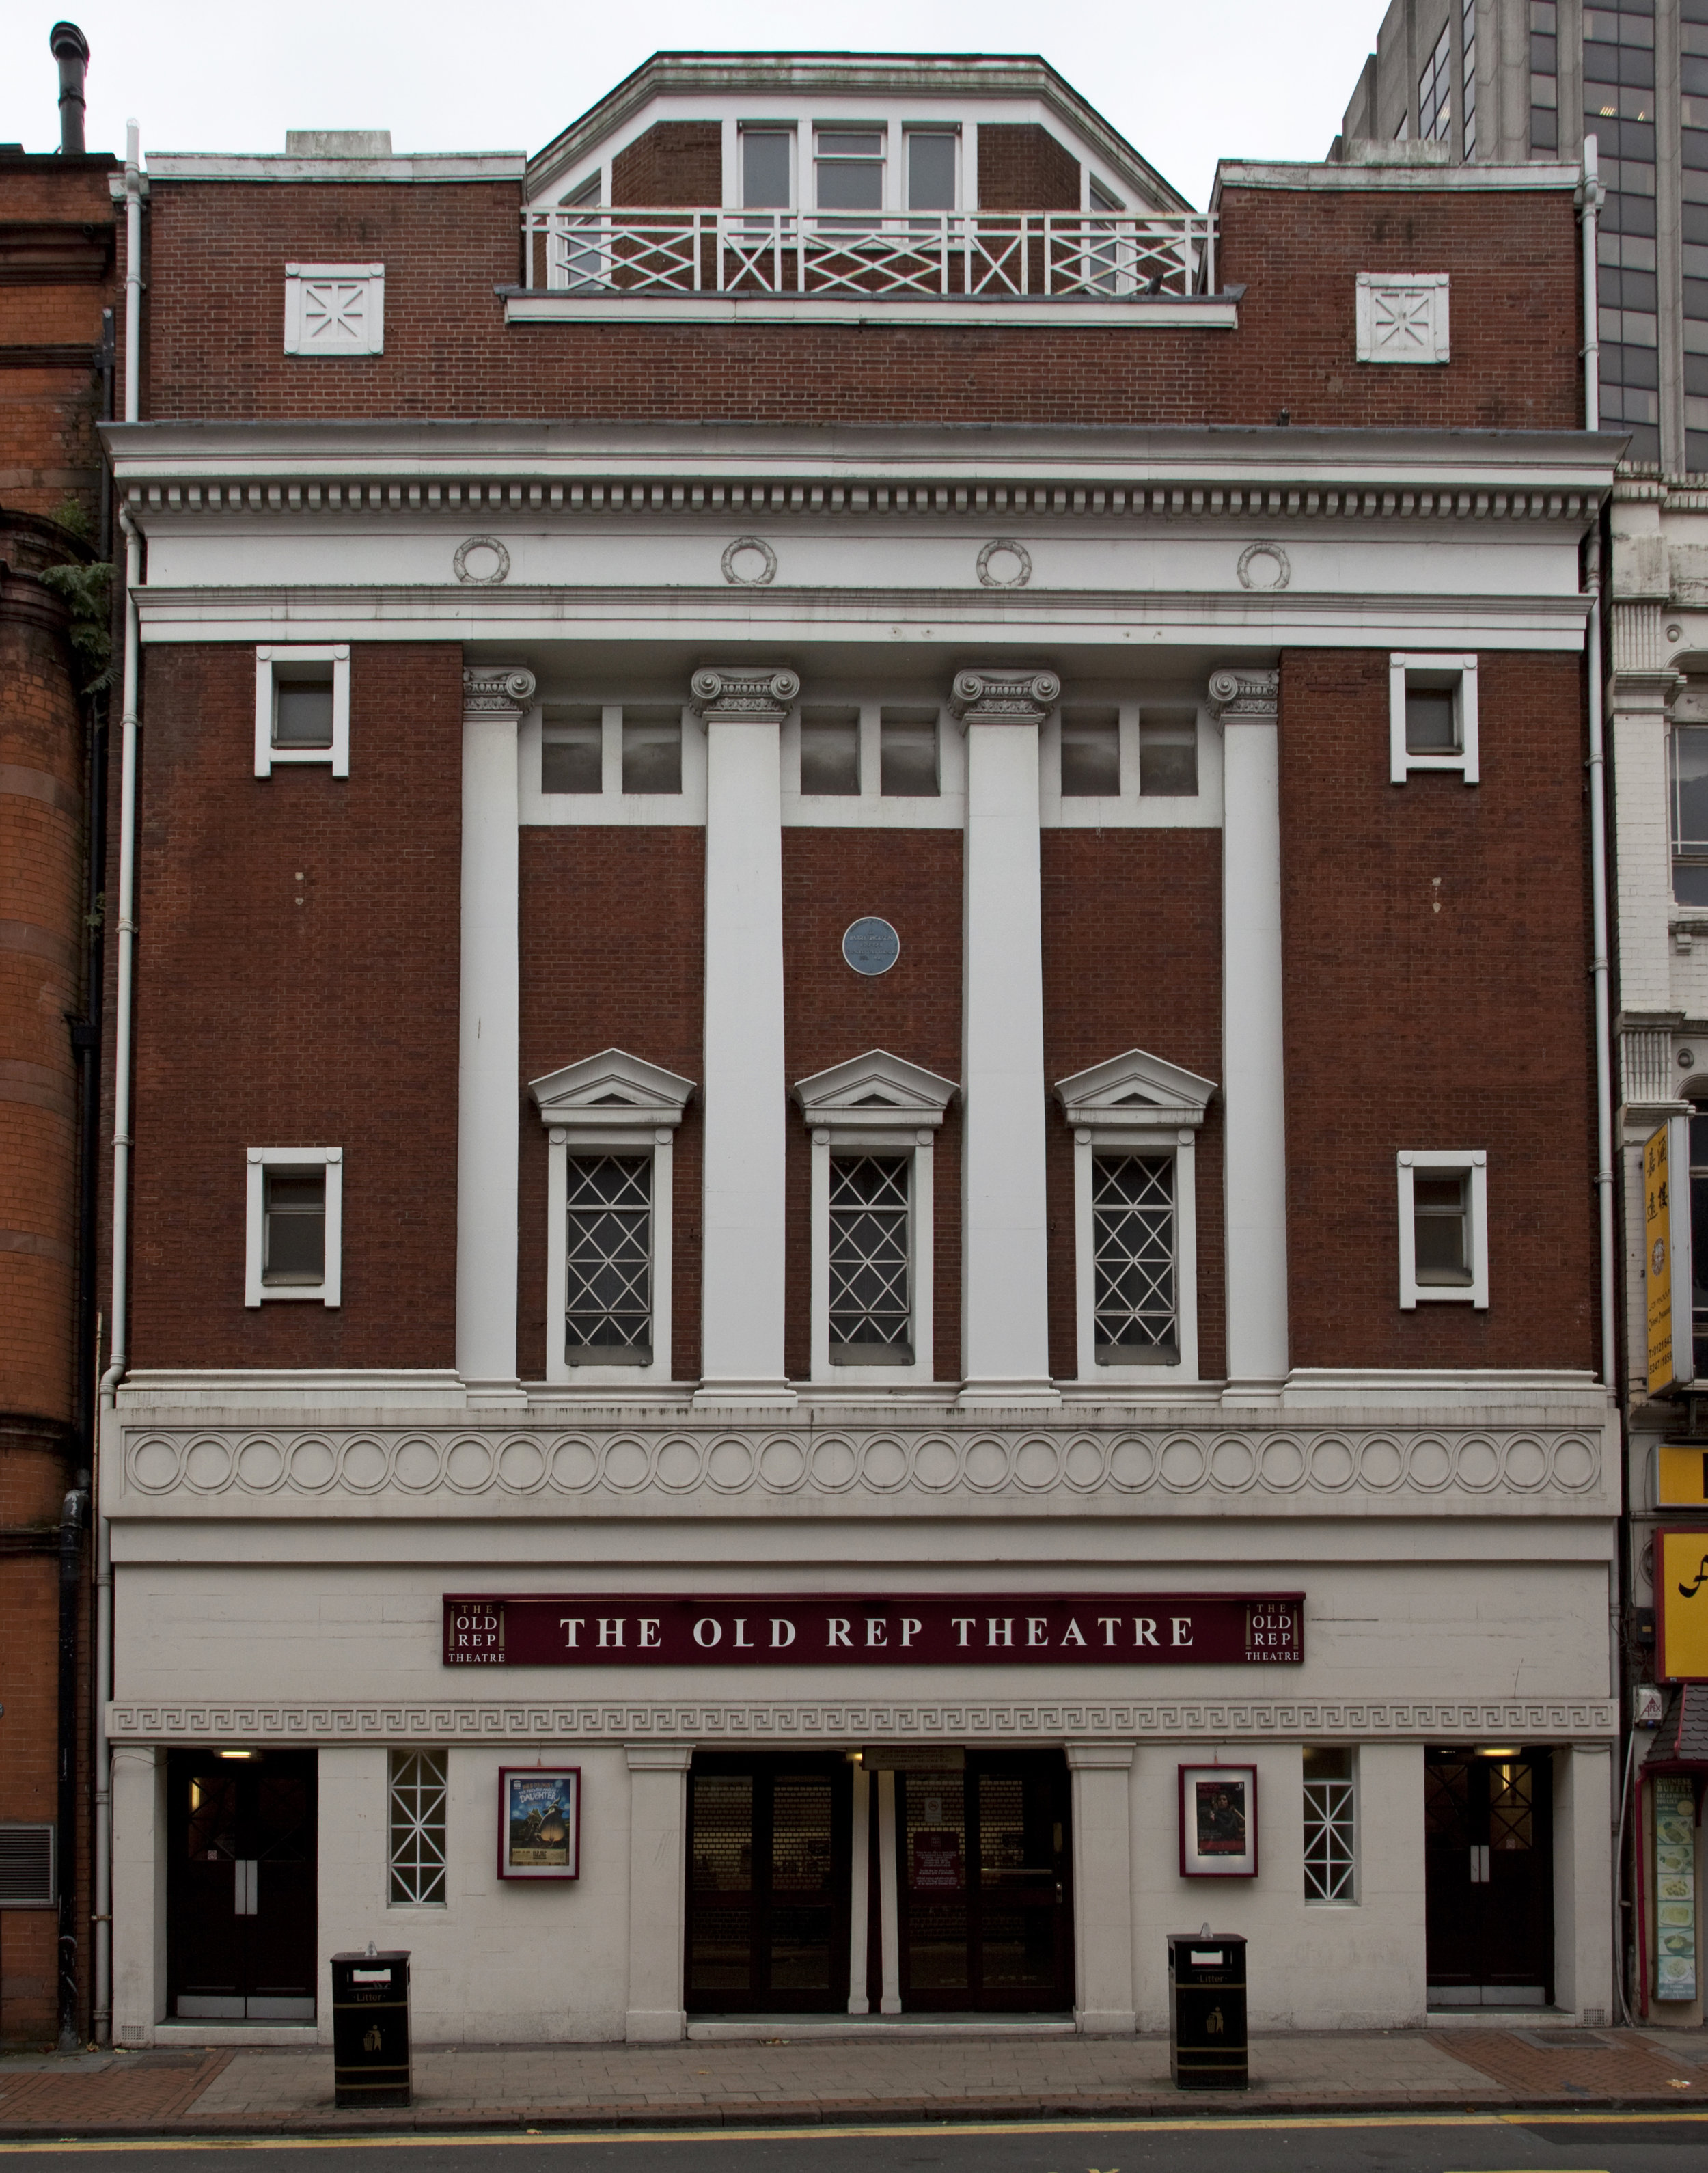 The Old Rep Theatre, Birmigham.